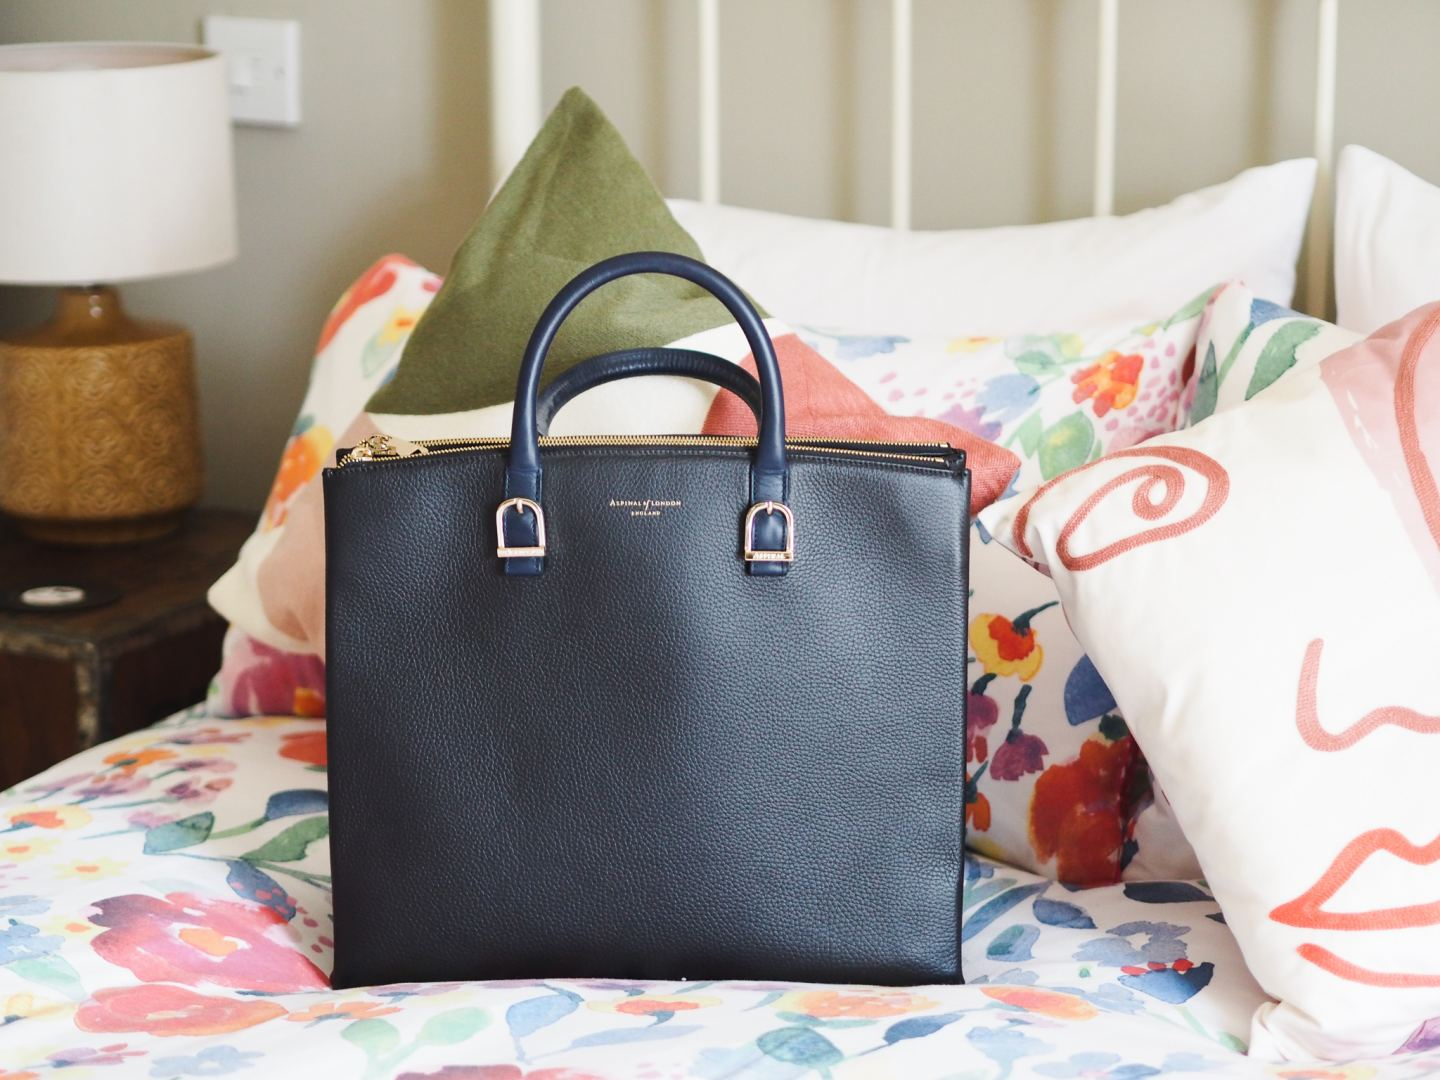 Aspinal Of London Madison Tote Bag navy blue handbag review